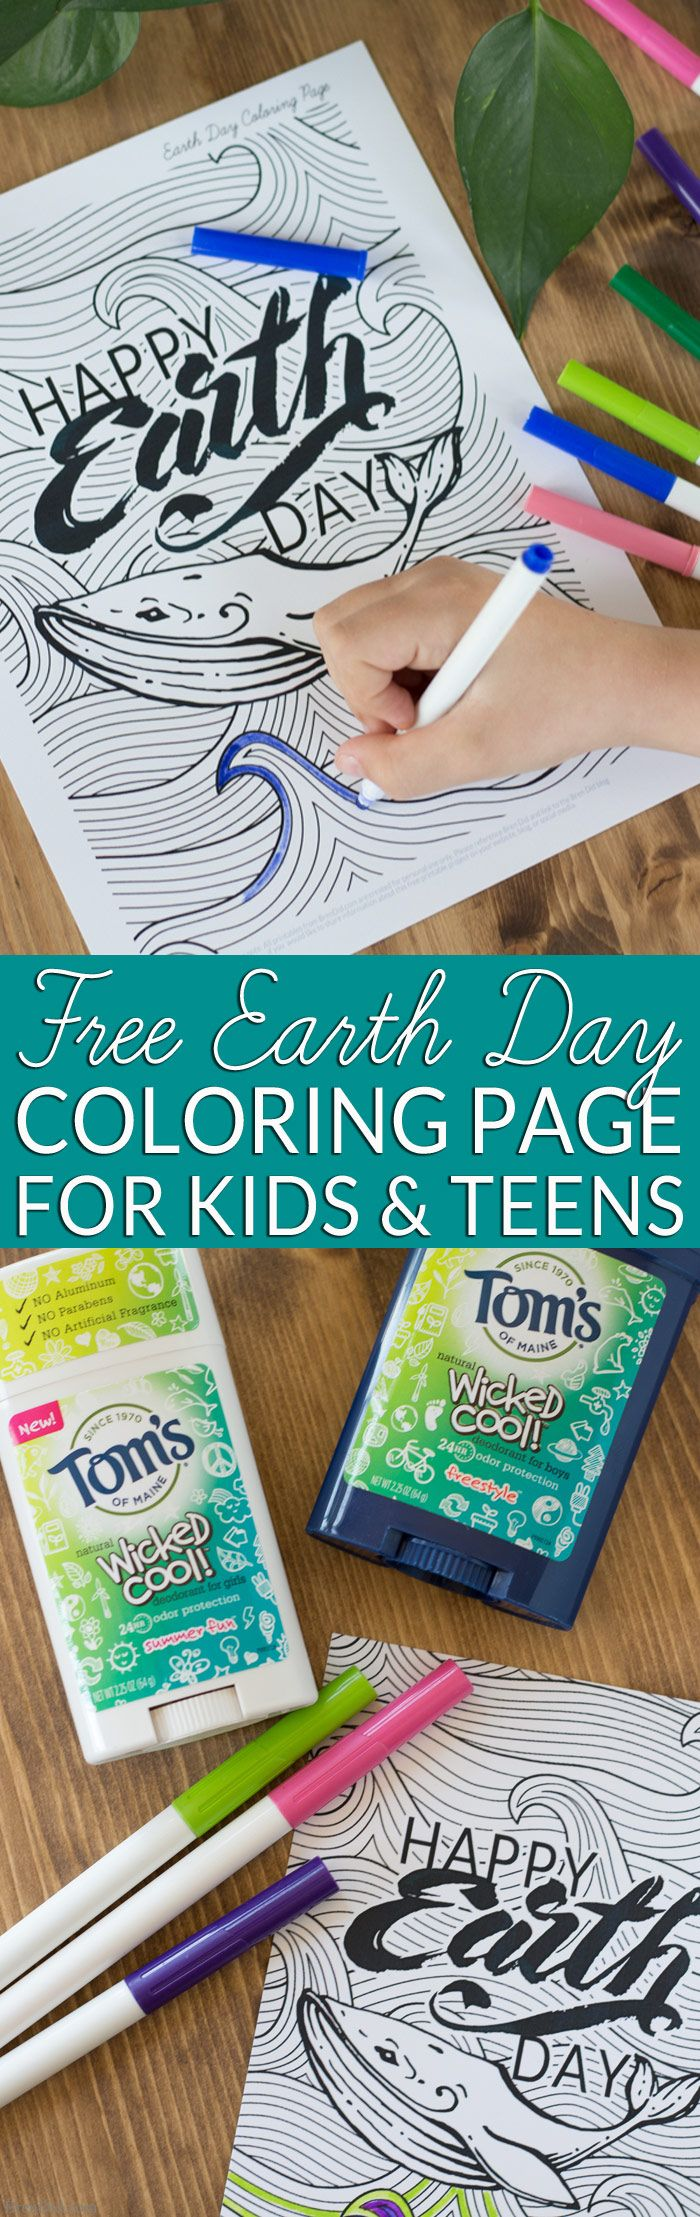 Free printable earth day coloring sheets - Earth Day Activity For Kids Free Printable Coloring Page